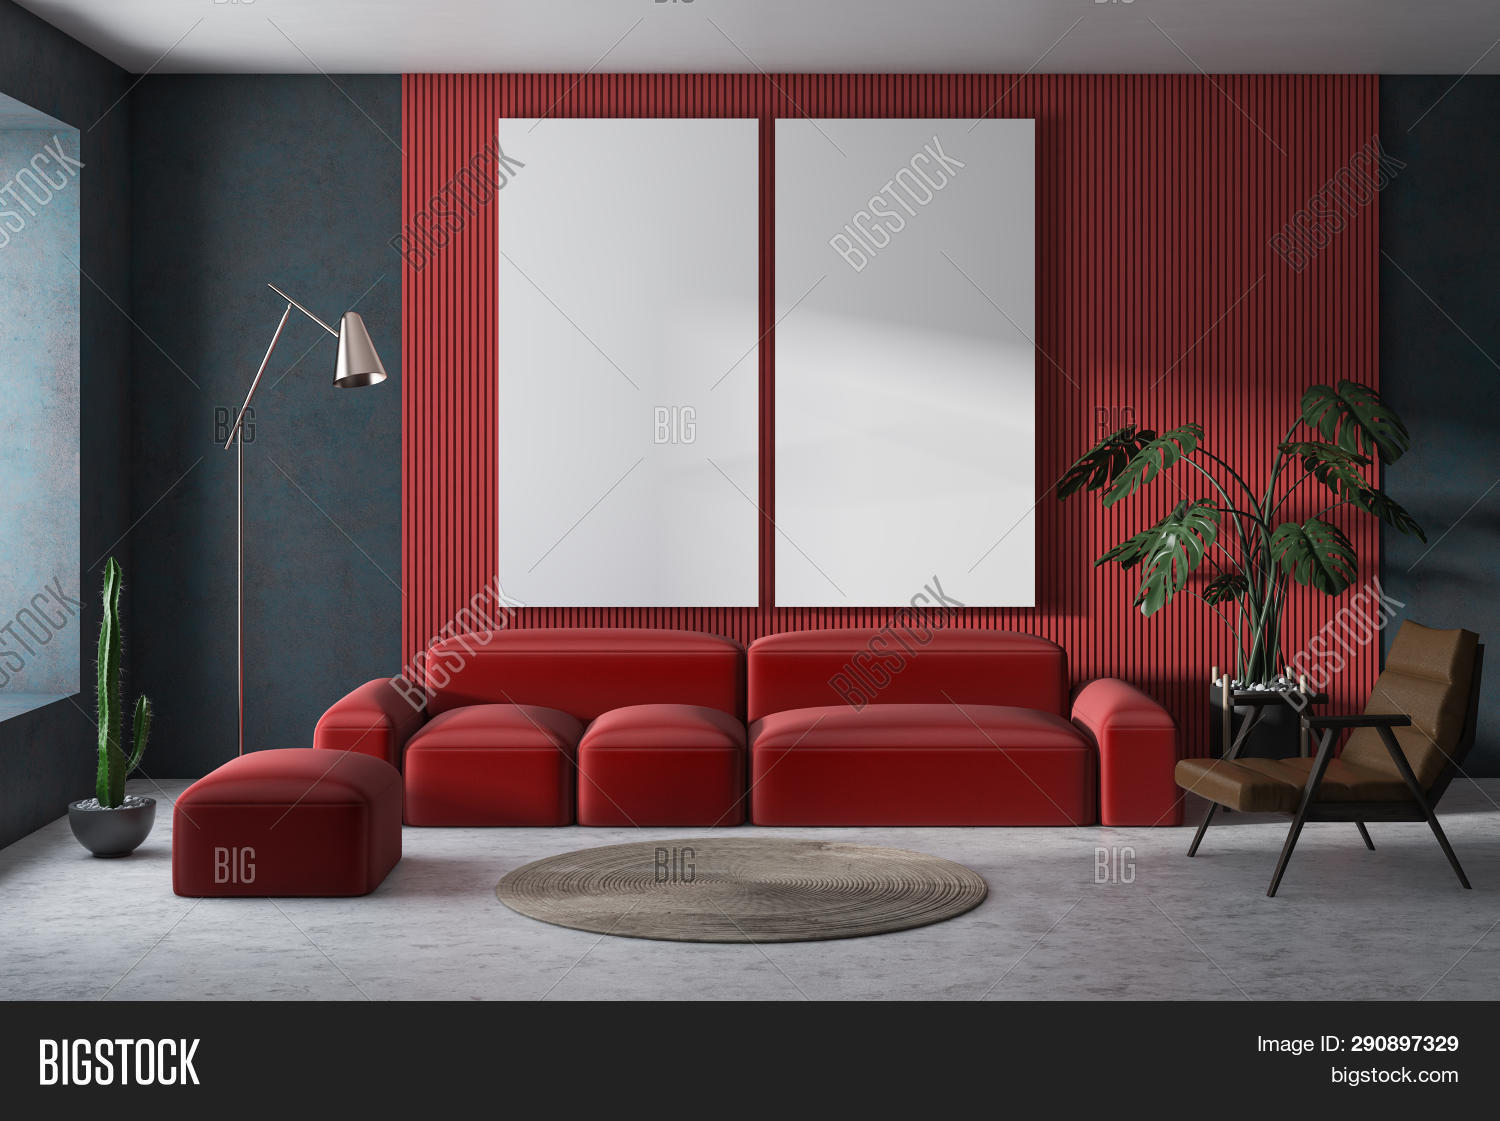 Red And Gray Living Room With Posters